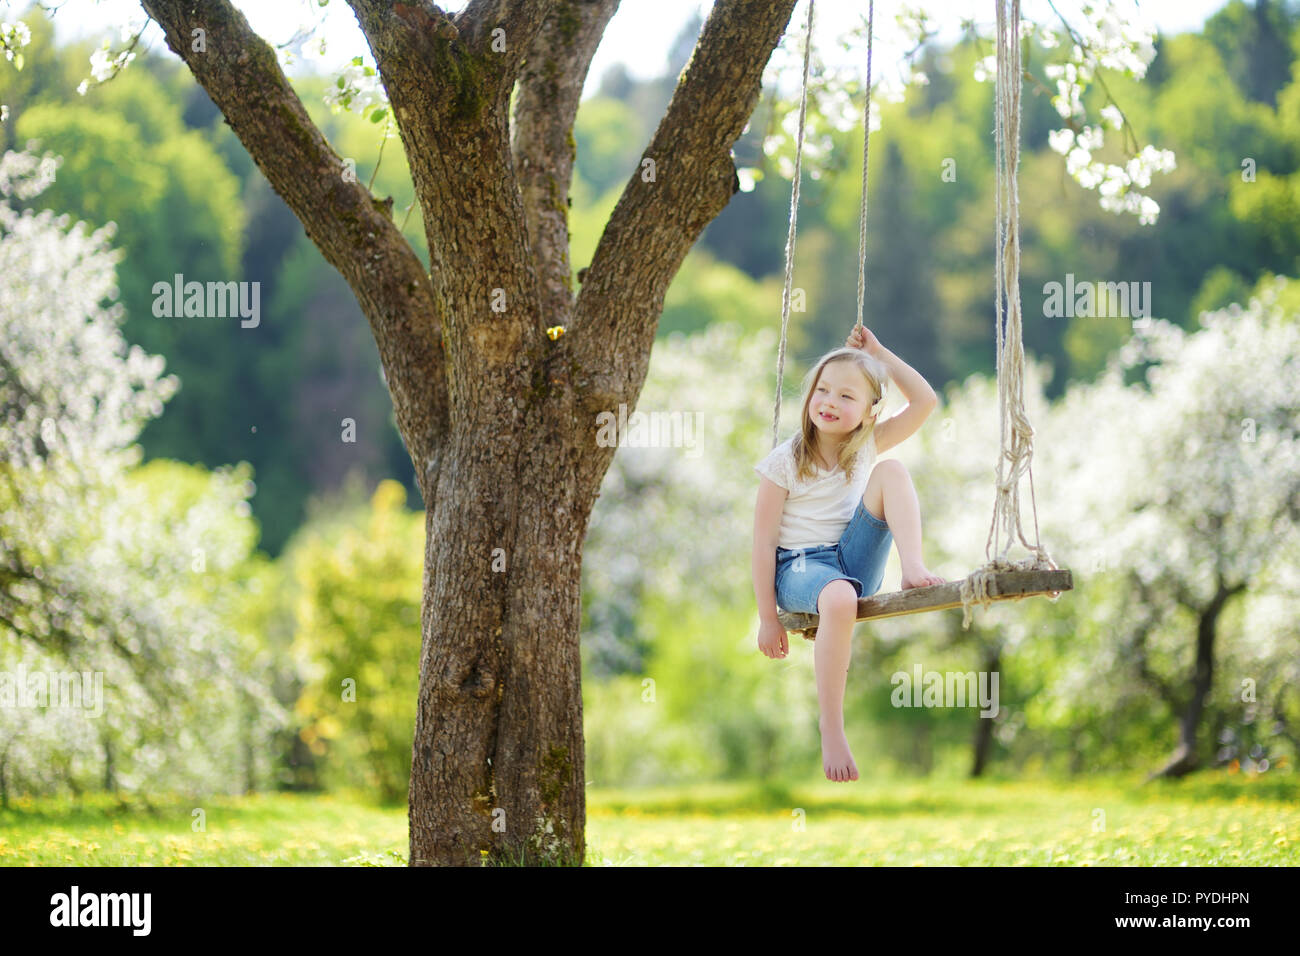 Cute Little Girl Having Fun On A Swing In Blossoming Old Apple